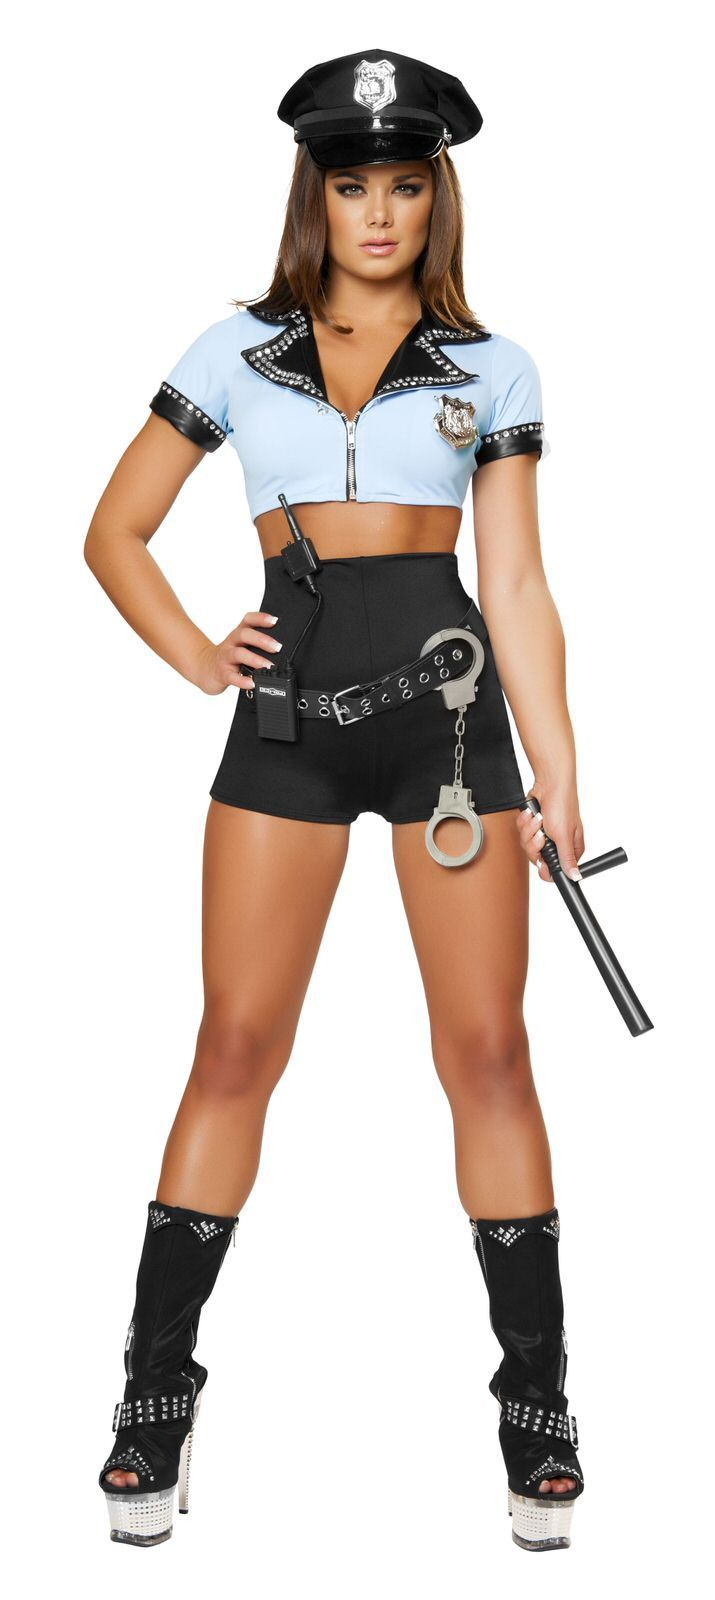 Sexy police officer halloween costume pics 859